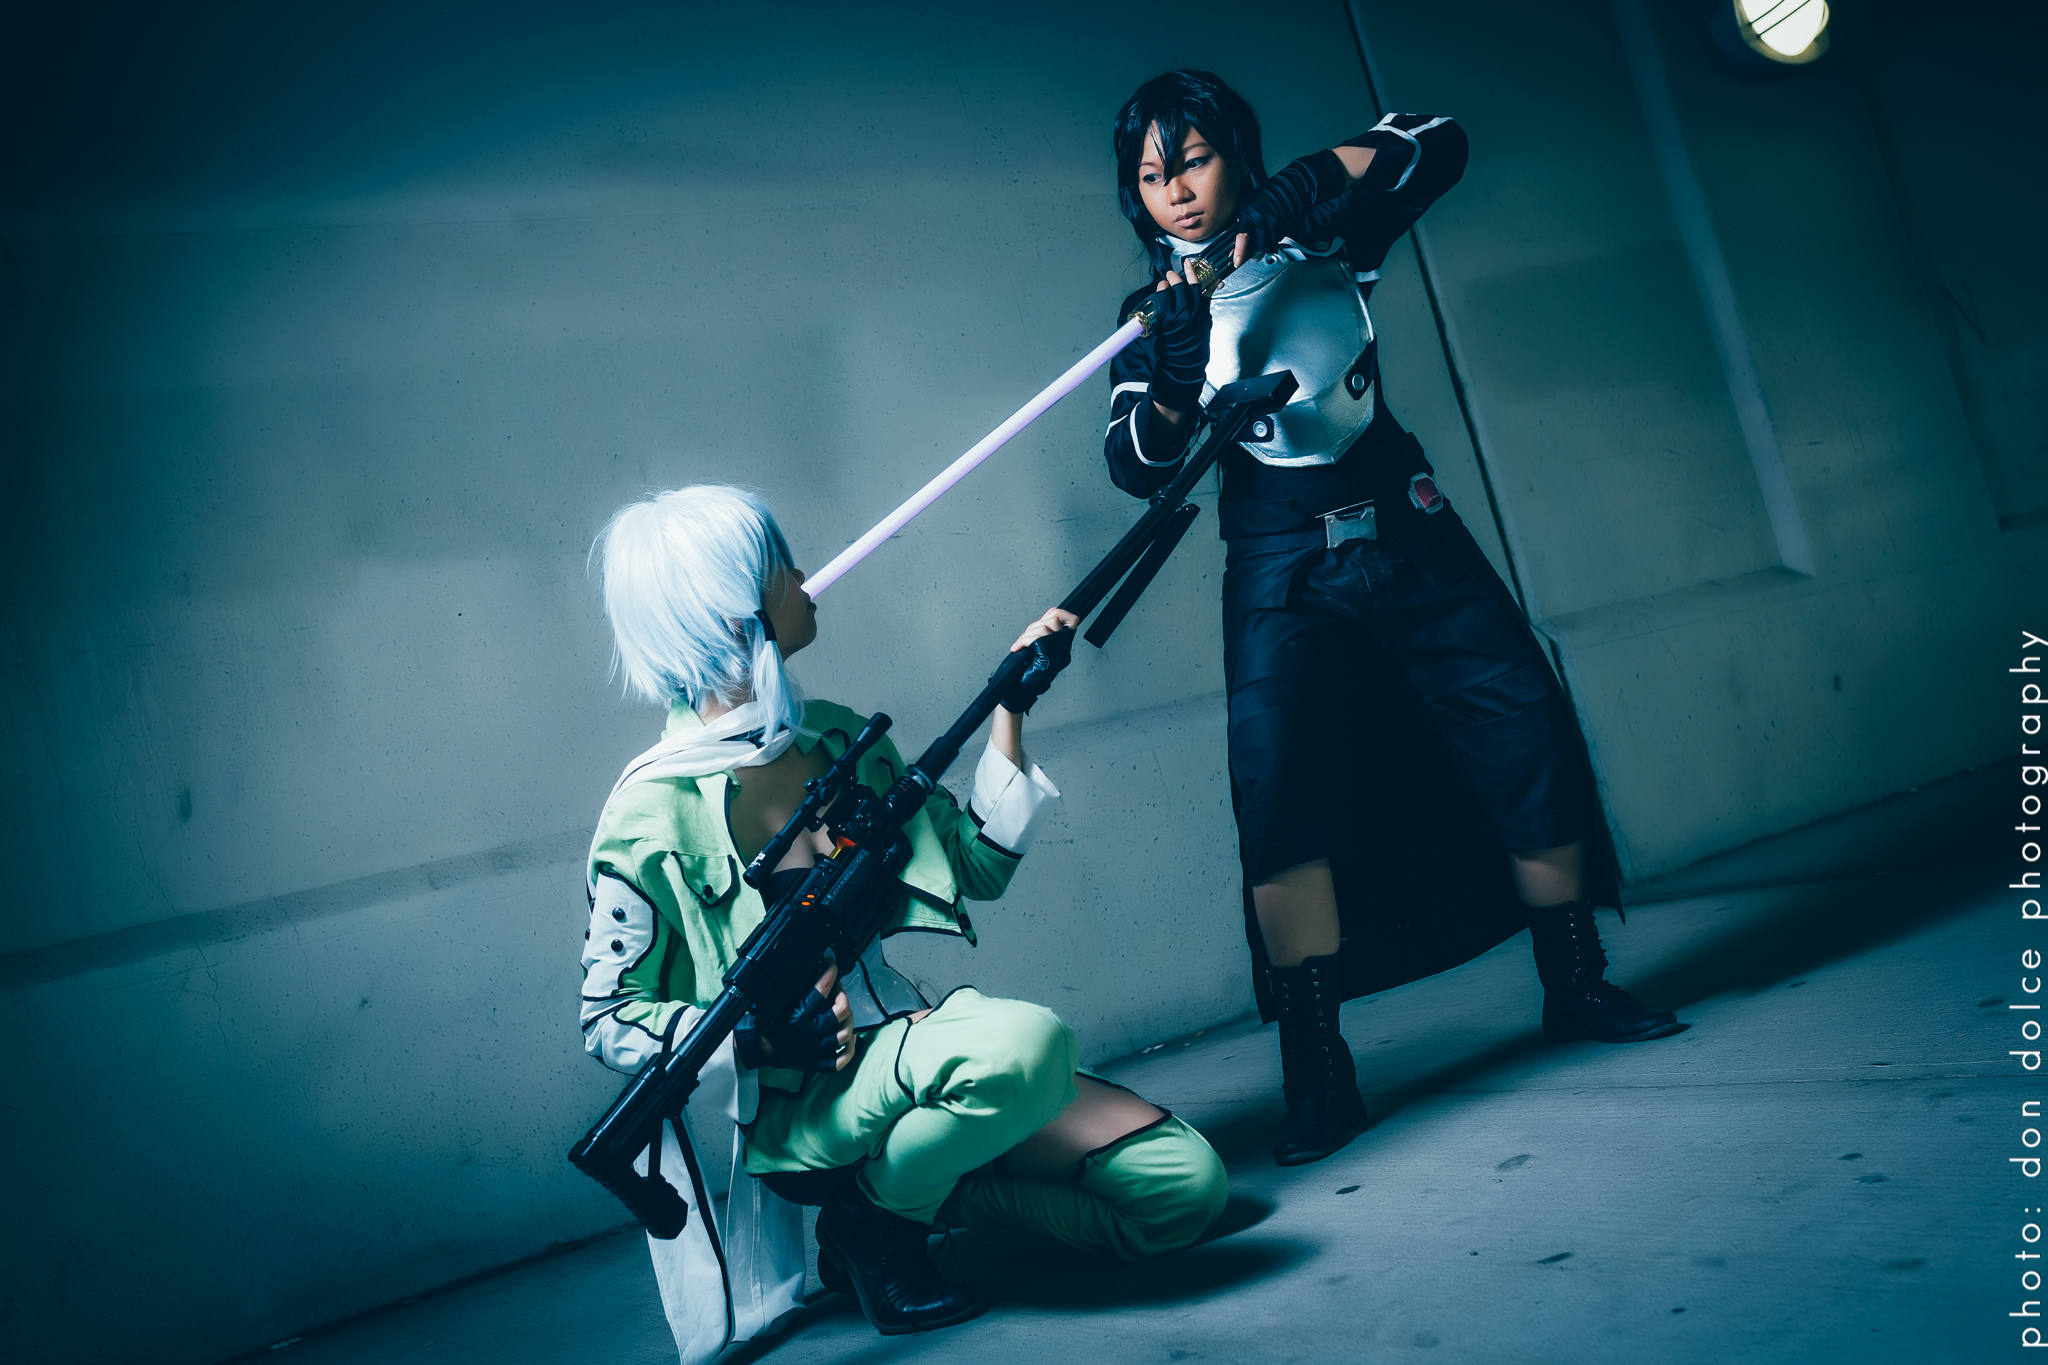 gun gale online kirito from sword art online 2 cosplay photo shoot with auudesu don dolce. Black Bedroom Furniture Sets. Home Design Ideas